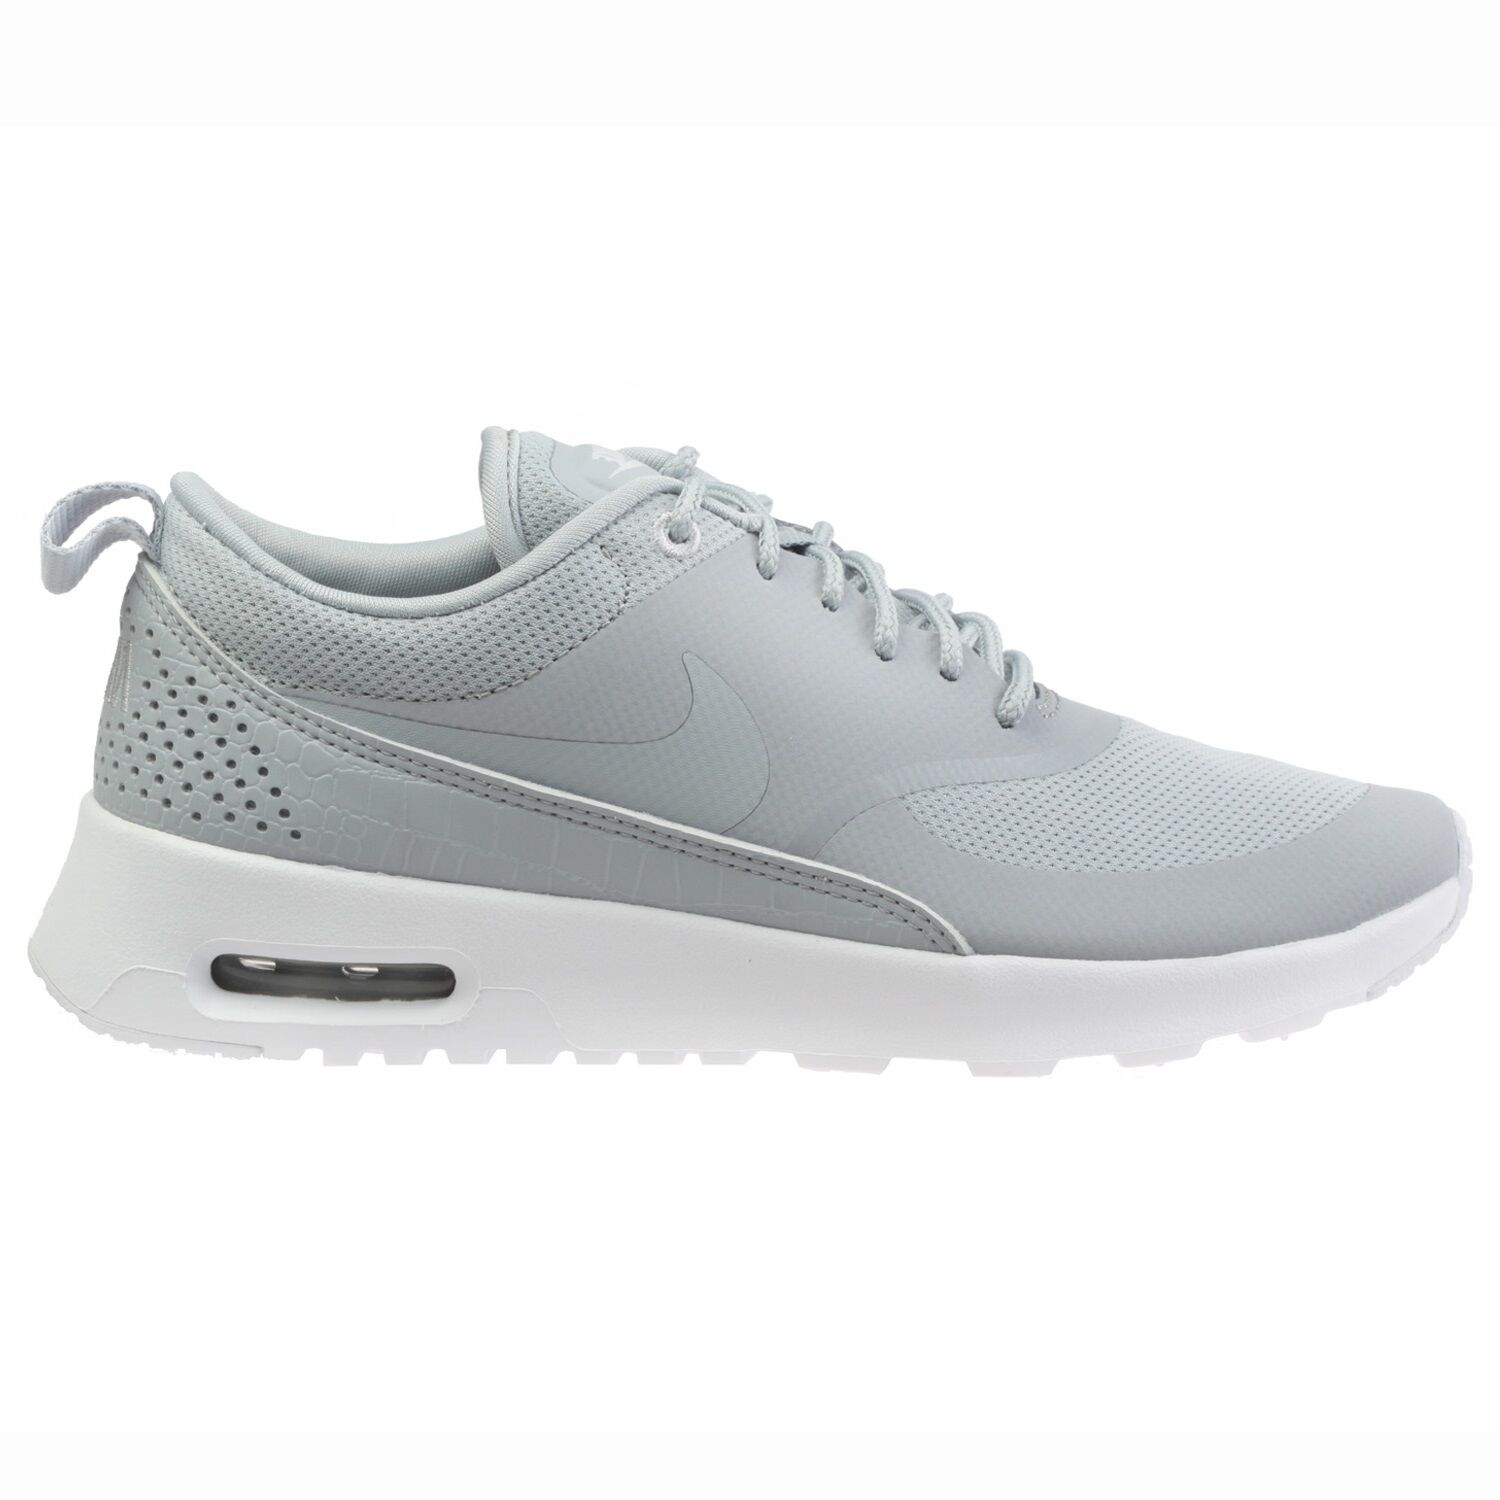 Nike Air Max Thea Womens 599409-023 Wolf Grey Textile Running Shoes Size 6